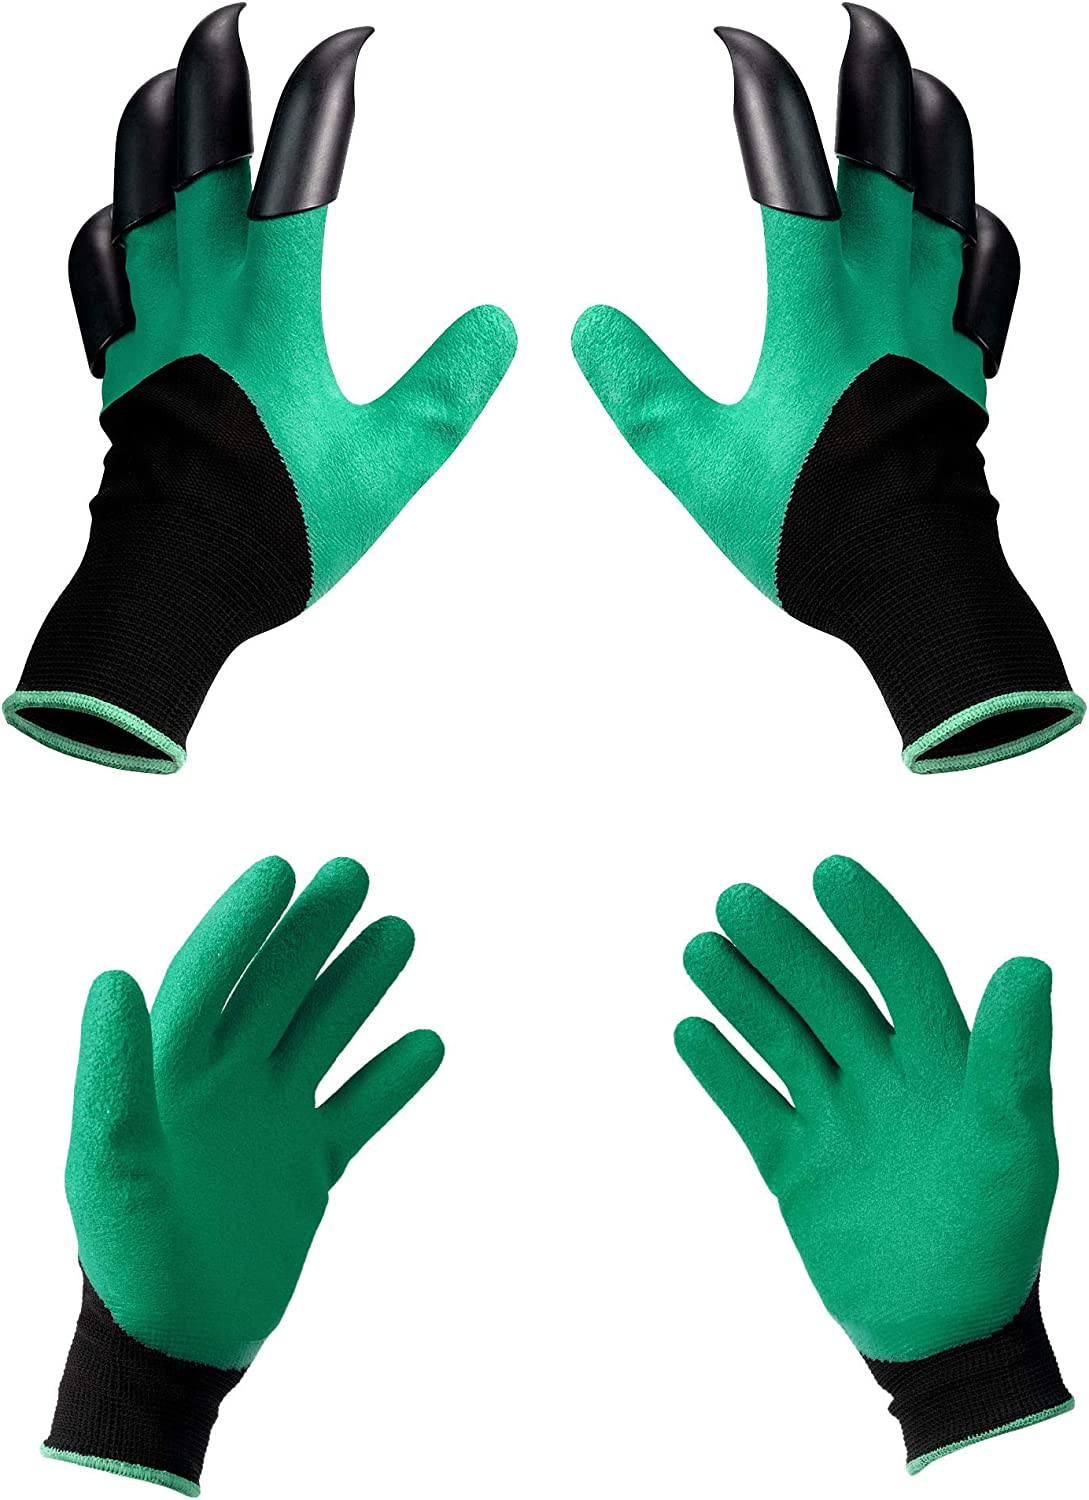 Waterproof garden gloves with claws for digging, planting, weeding, seeds, finger protection, fingernails. Best garden gift for men and women (2 pairs)